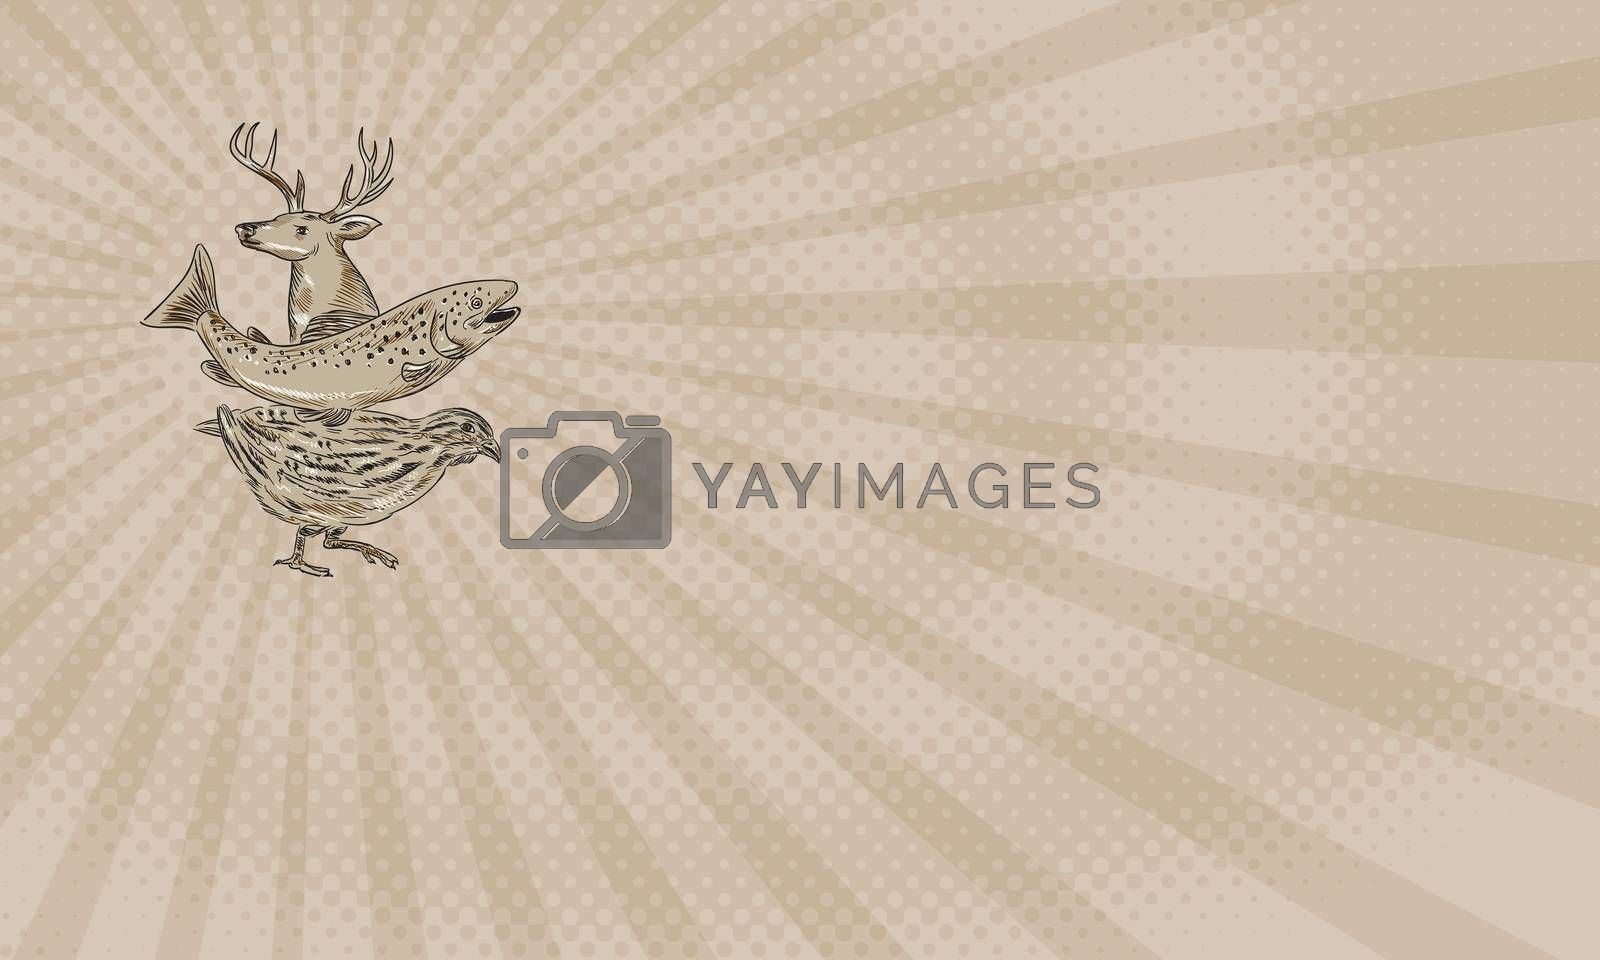 Business card showing Drawing sketch style illustration of a deer, trout and quail viewed from the side.